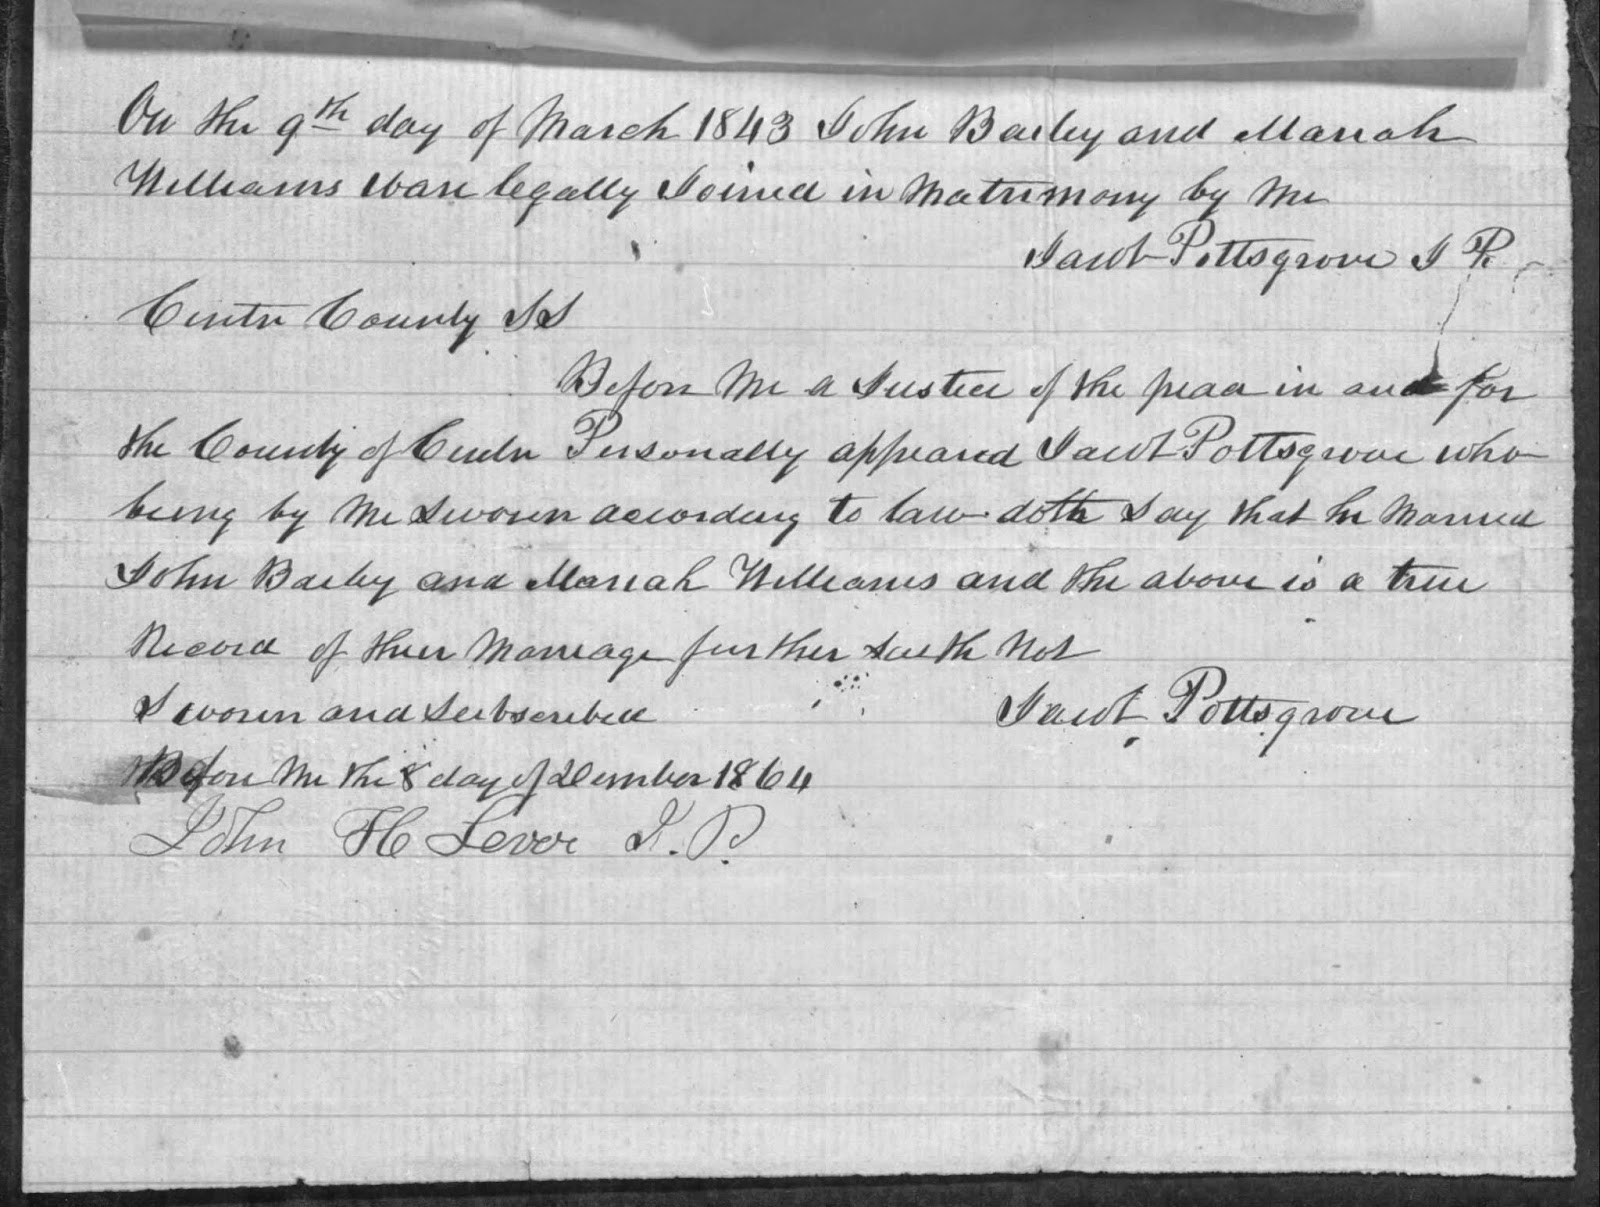 Climbing My Family Tree: Affidavit of Jacob Pottsgrove, J.P.